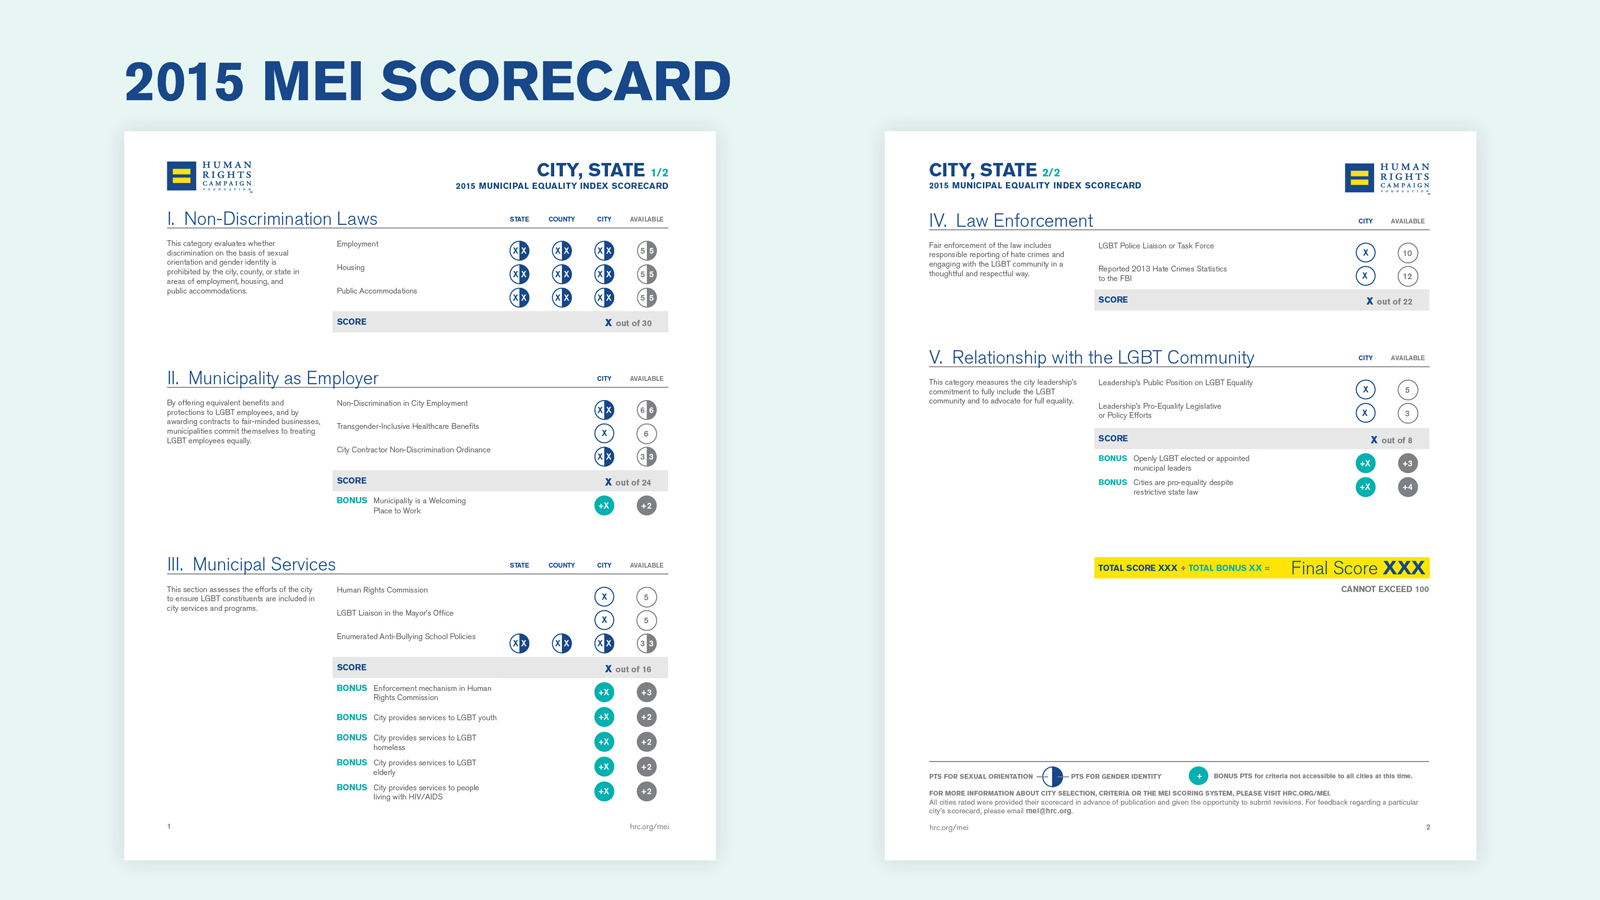 About the 2015 Scorecard